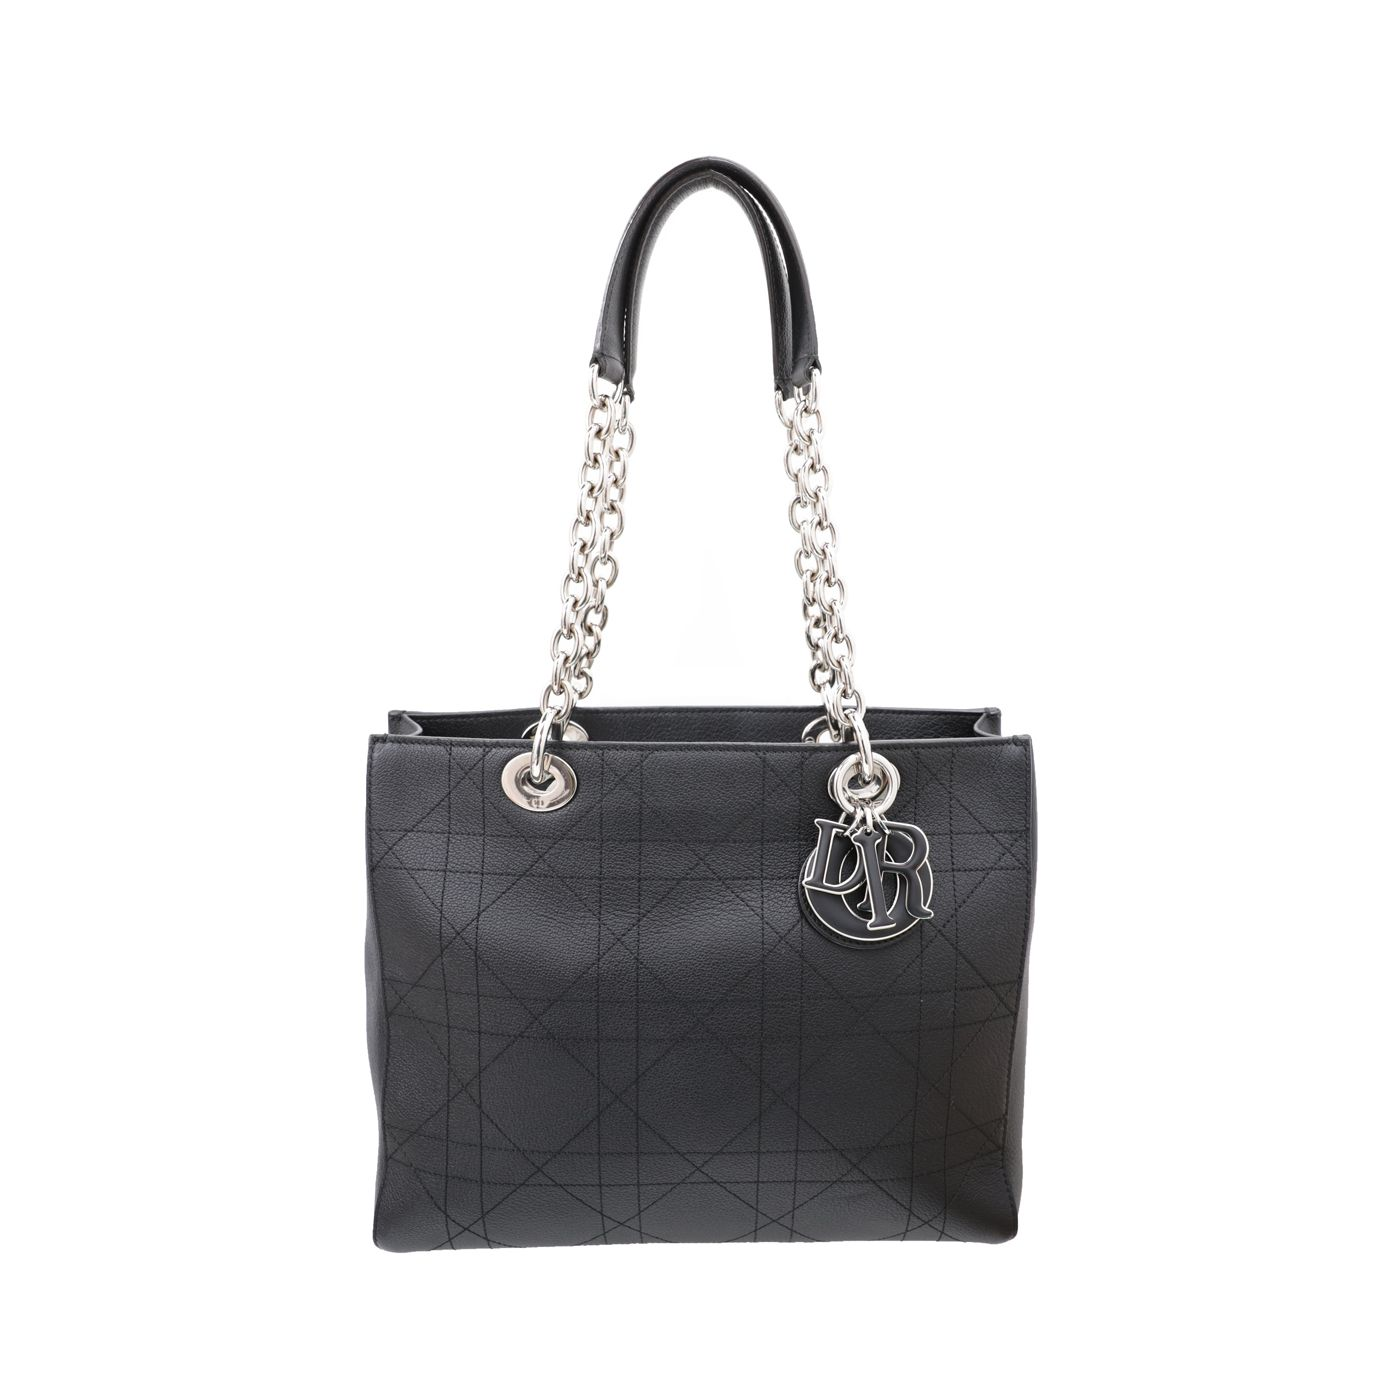 Christian Dior Black Ultra Dior Matte Medium Tote Bag